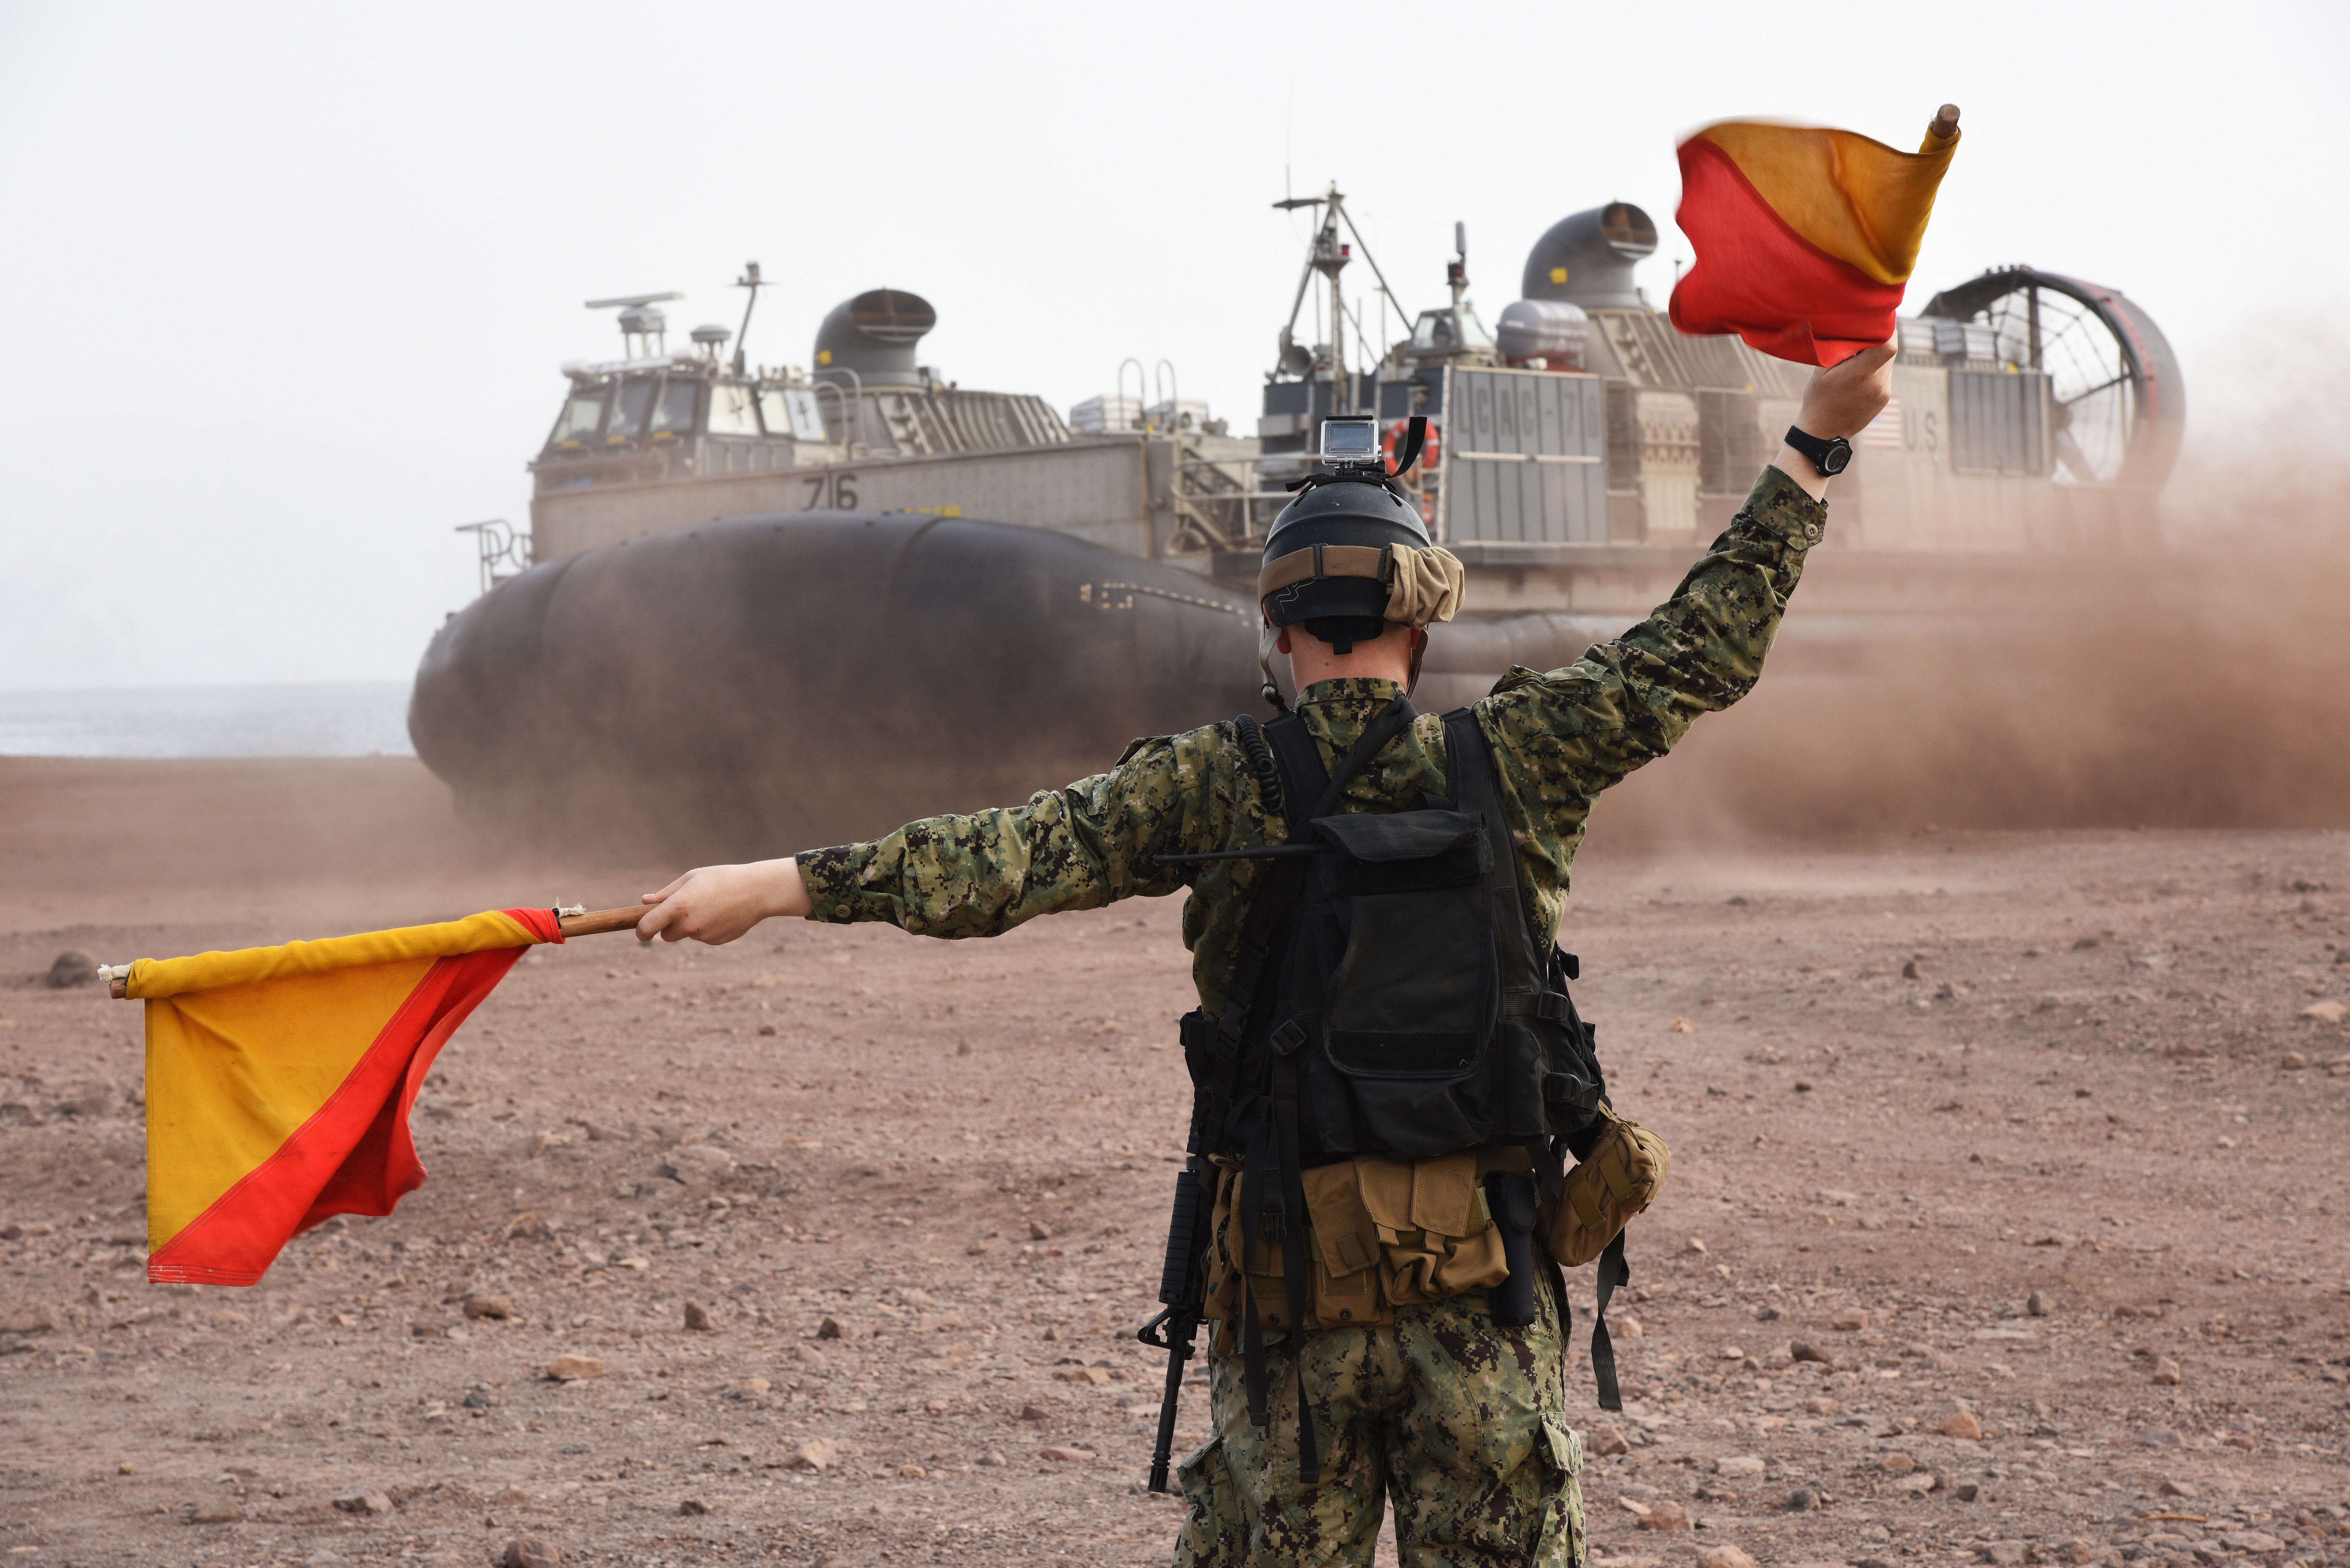 A U.S. Navy Maritime Expeditionary Security Force member signals that it is safe for a U.S. Navy Landing Craft Air Cushion (LCAC) to leave the beach and travel back to the San Antonio-class amphibious transport dock ship USS Anchorage (LPD-23) in Arta, Djibouti, July 20, 2015. LCACs for this military ship delivered U.S. Marines and equipment from the 15th Marine Expeditionary Unit for sustainment training. (U.S. Air Force photo by Staff Sgt. Maria Bowman)